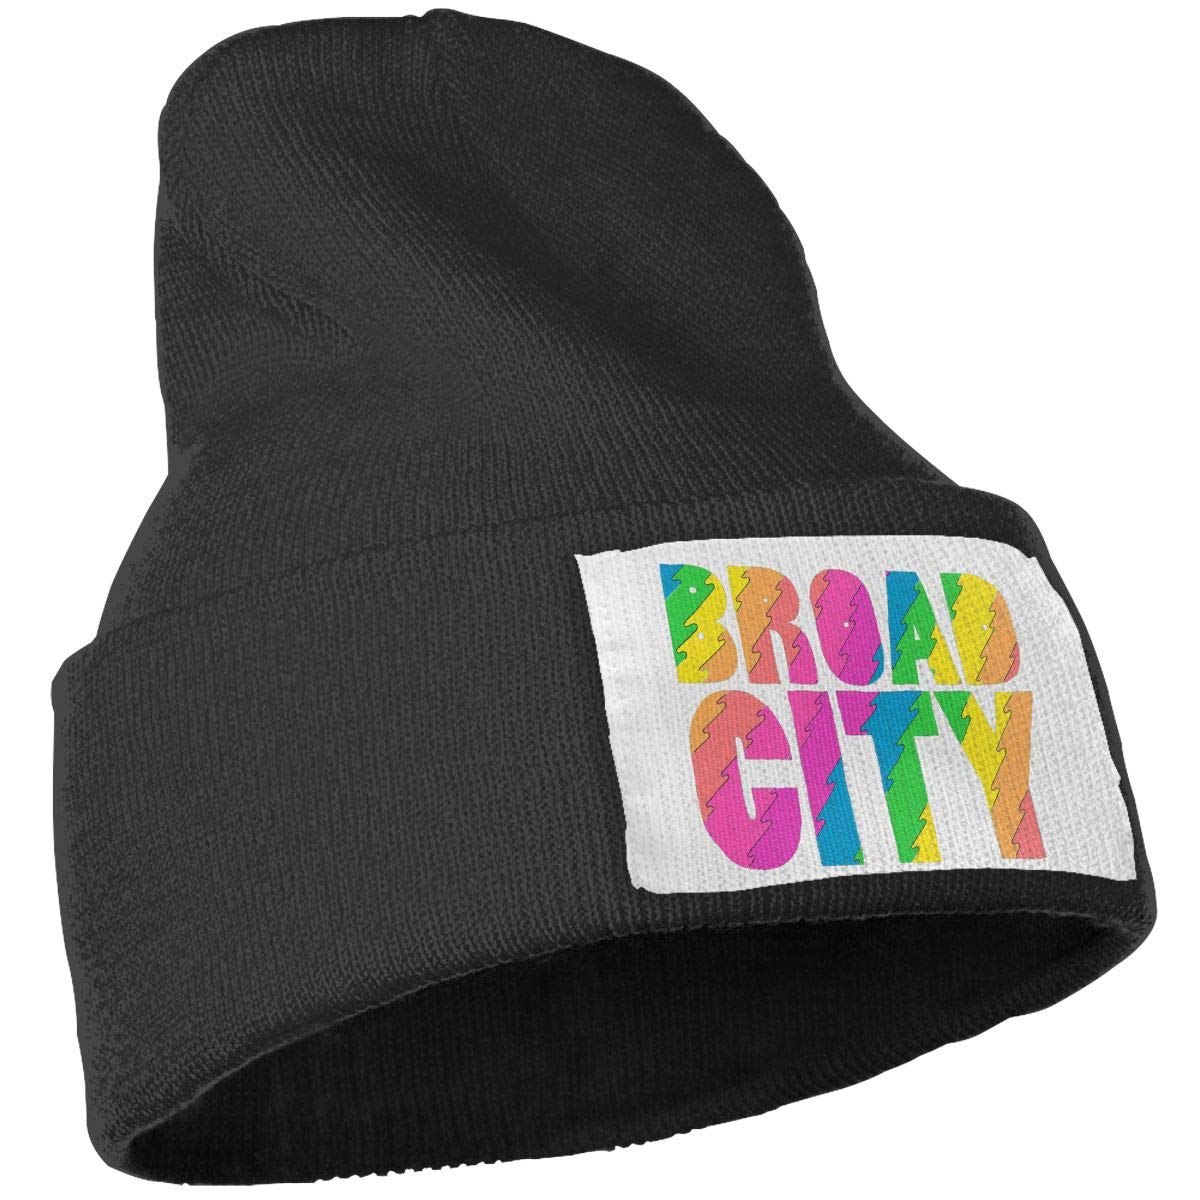 Unisex Winter Hats Broad City Skull Caps Knit Hat Cap Beanie Cap for Men//Womens